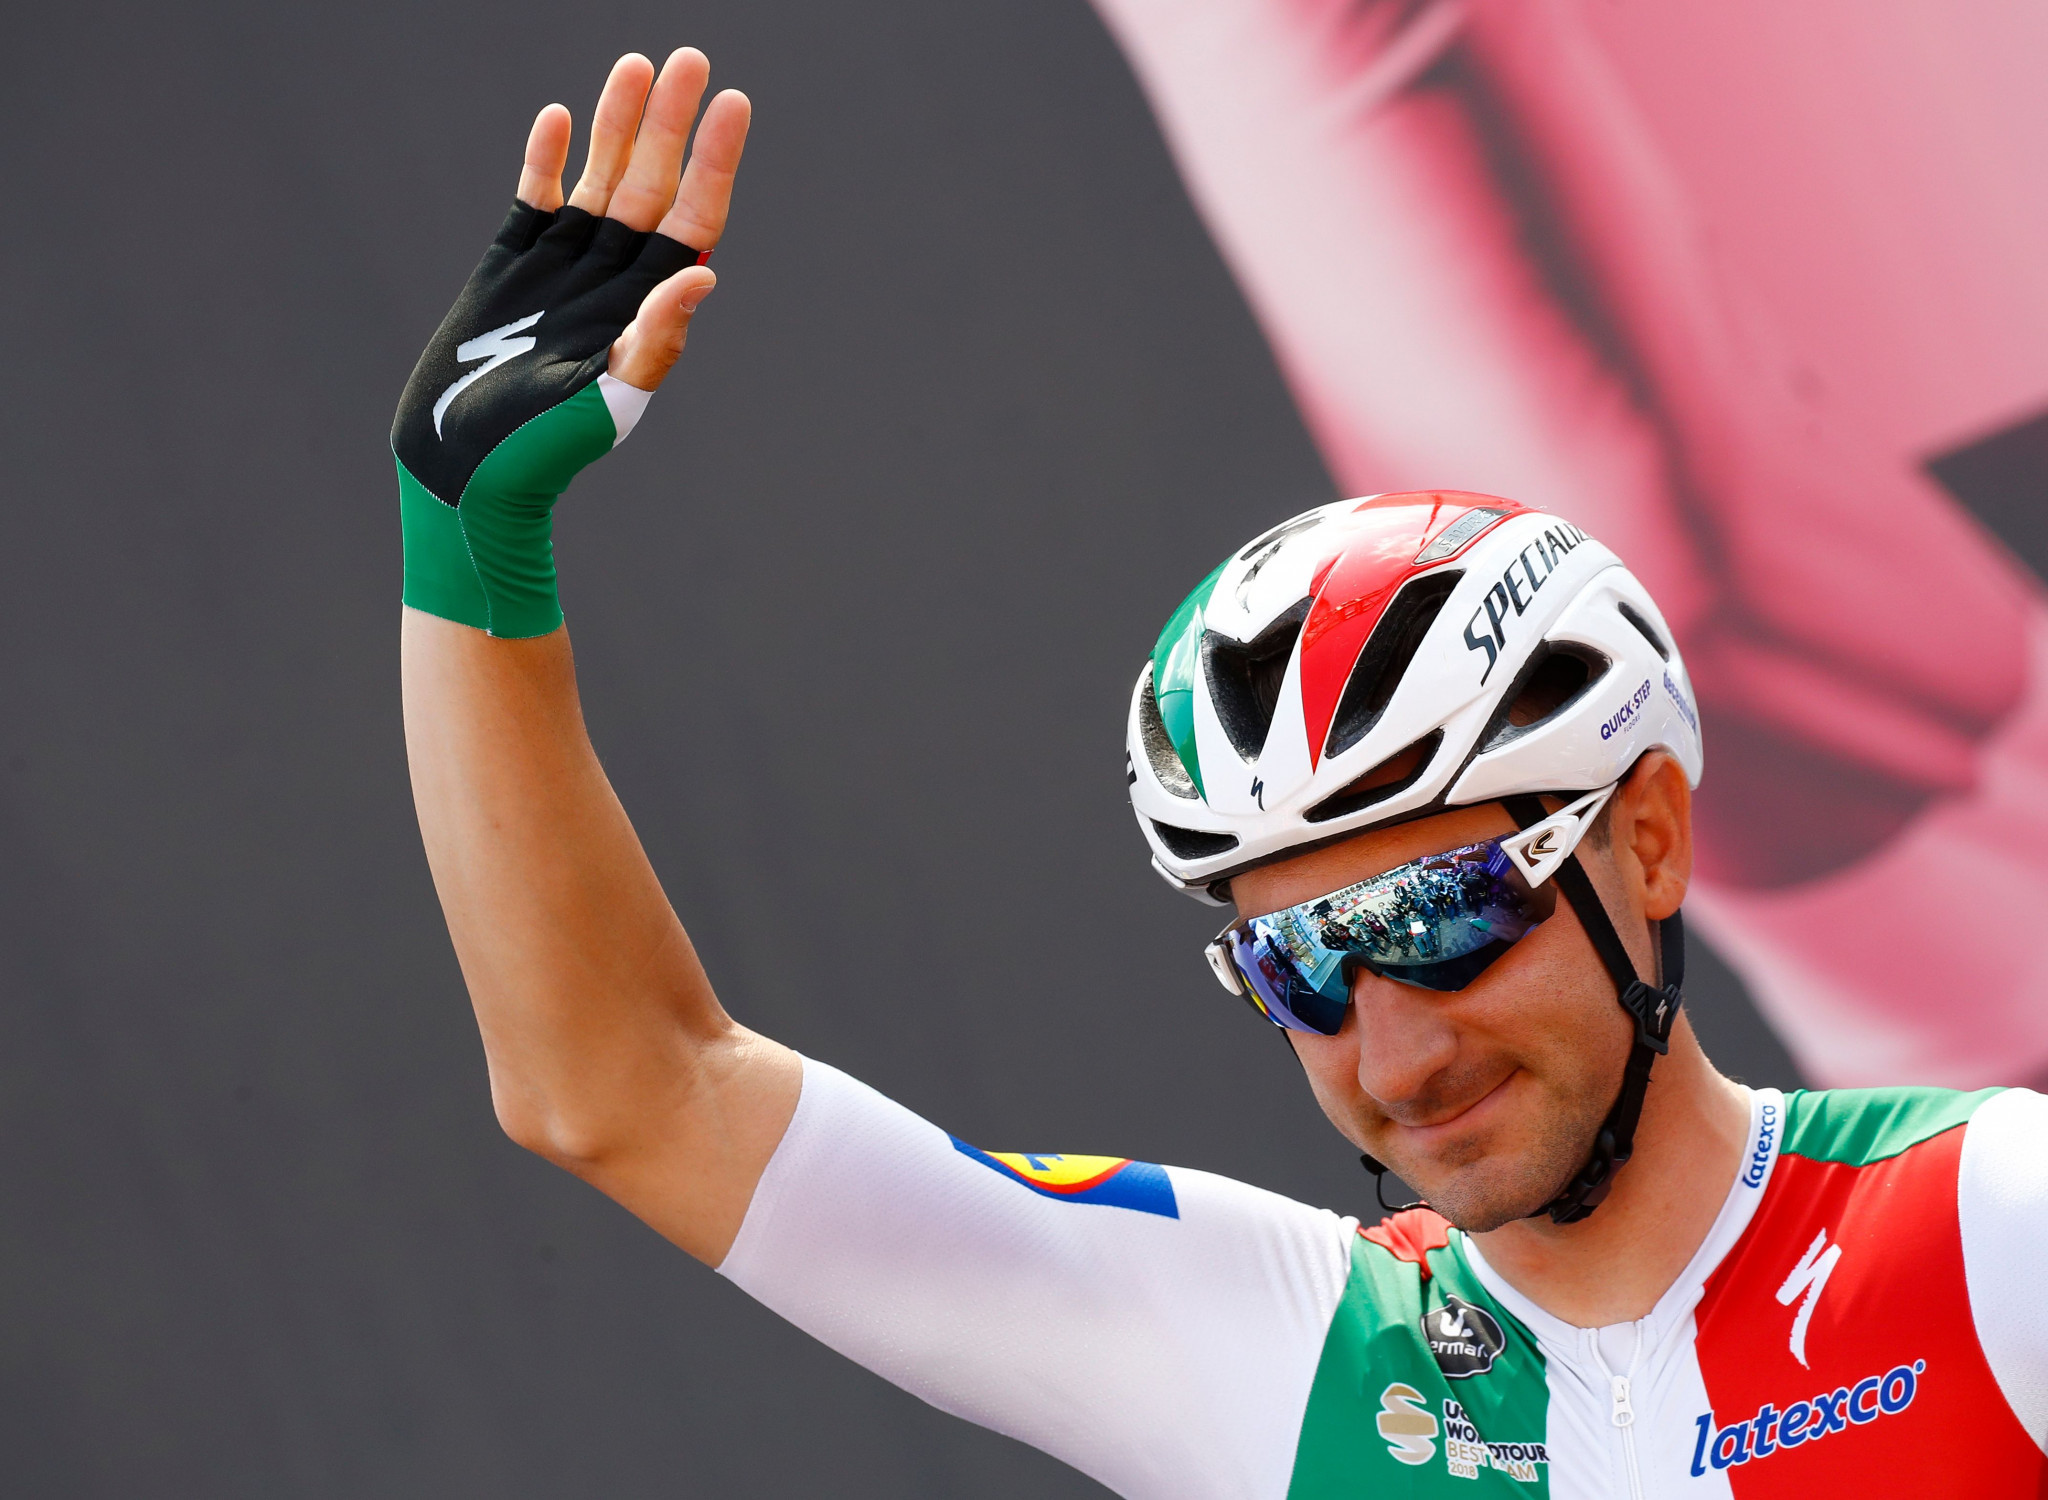 Viviani claims Tour de Suisse yellow jersey as Team Ineos rider Thomas crashes out